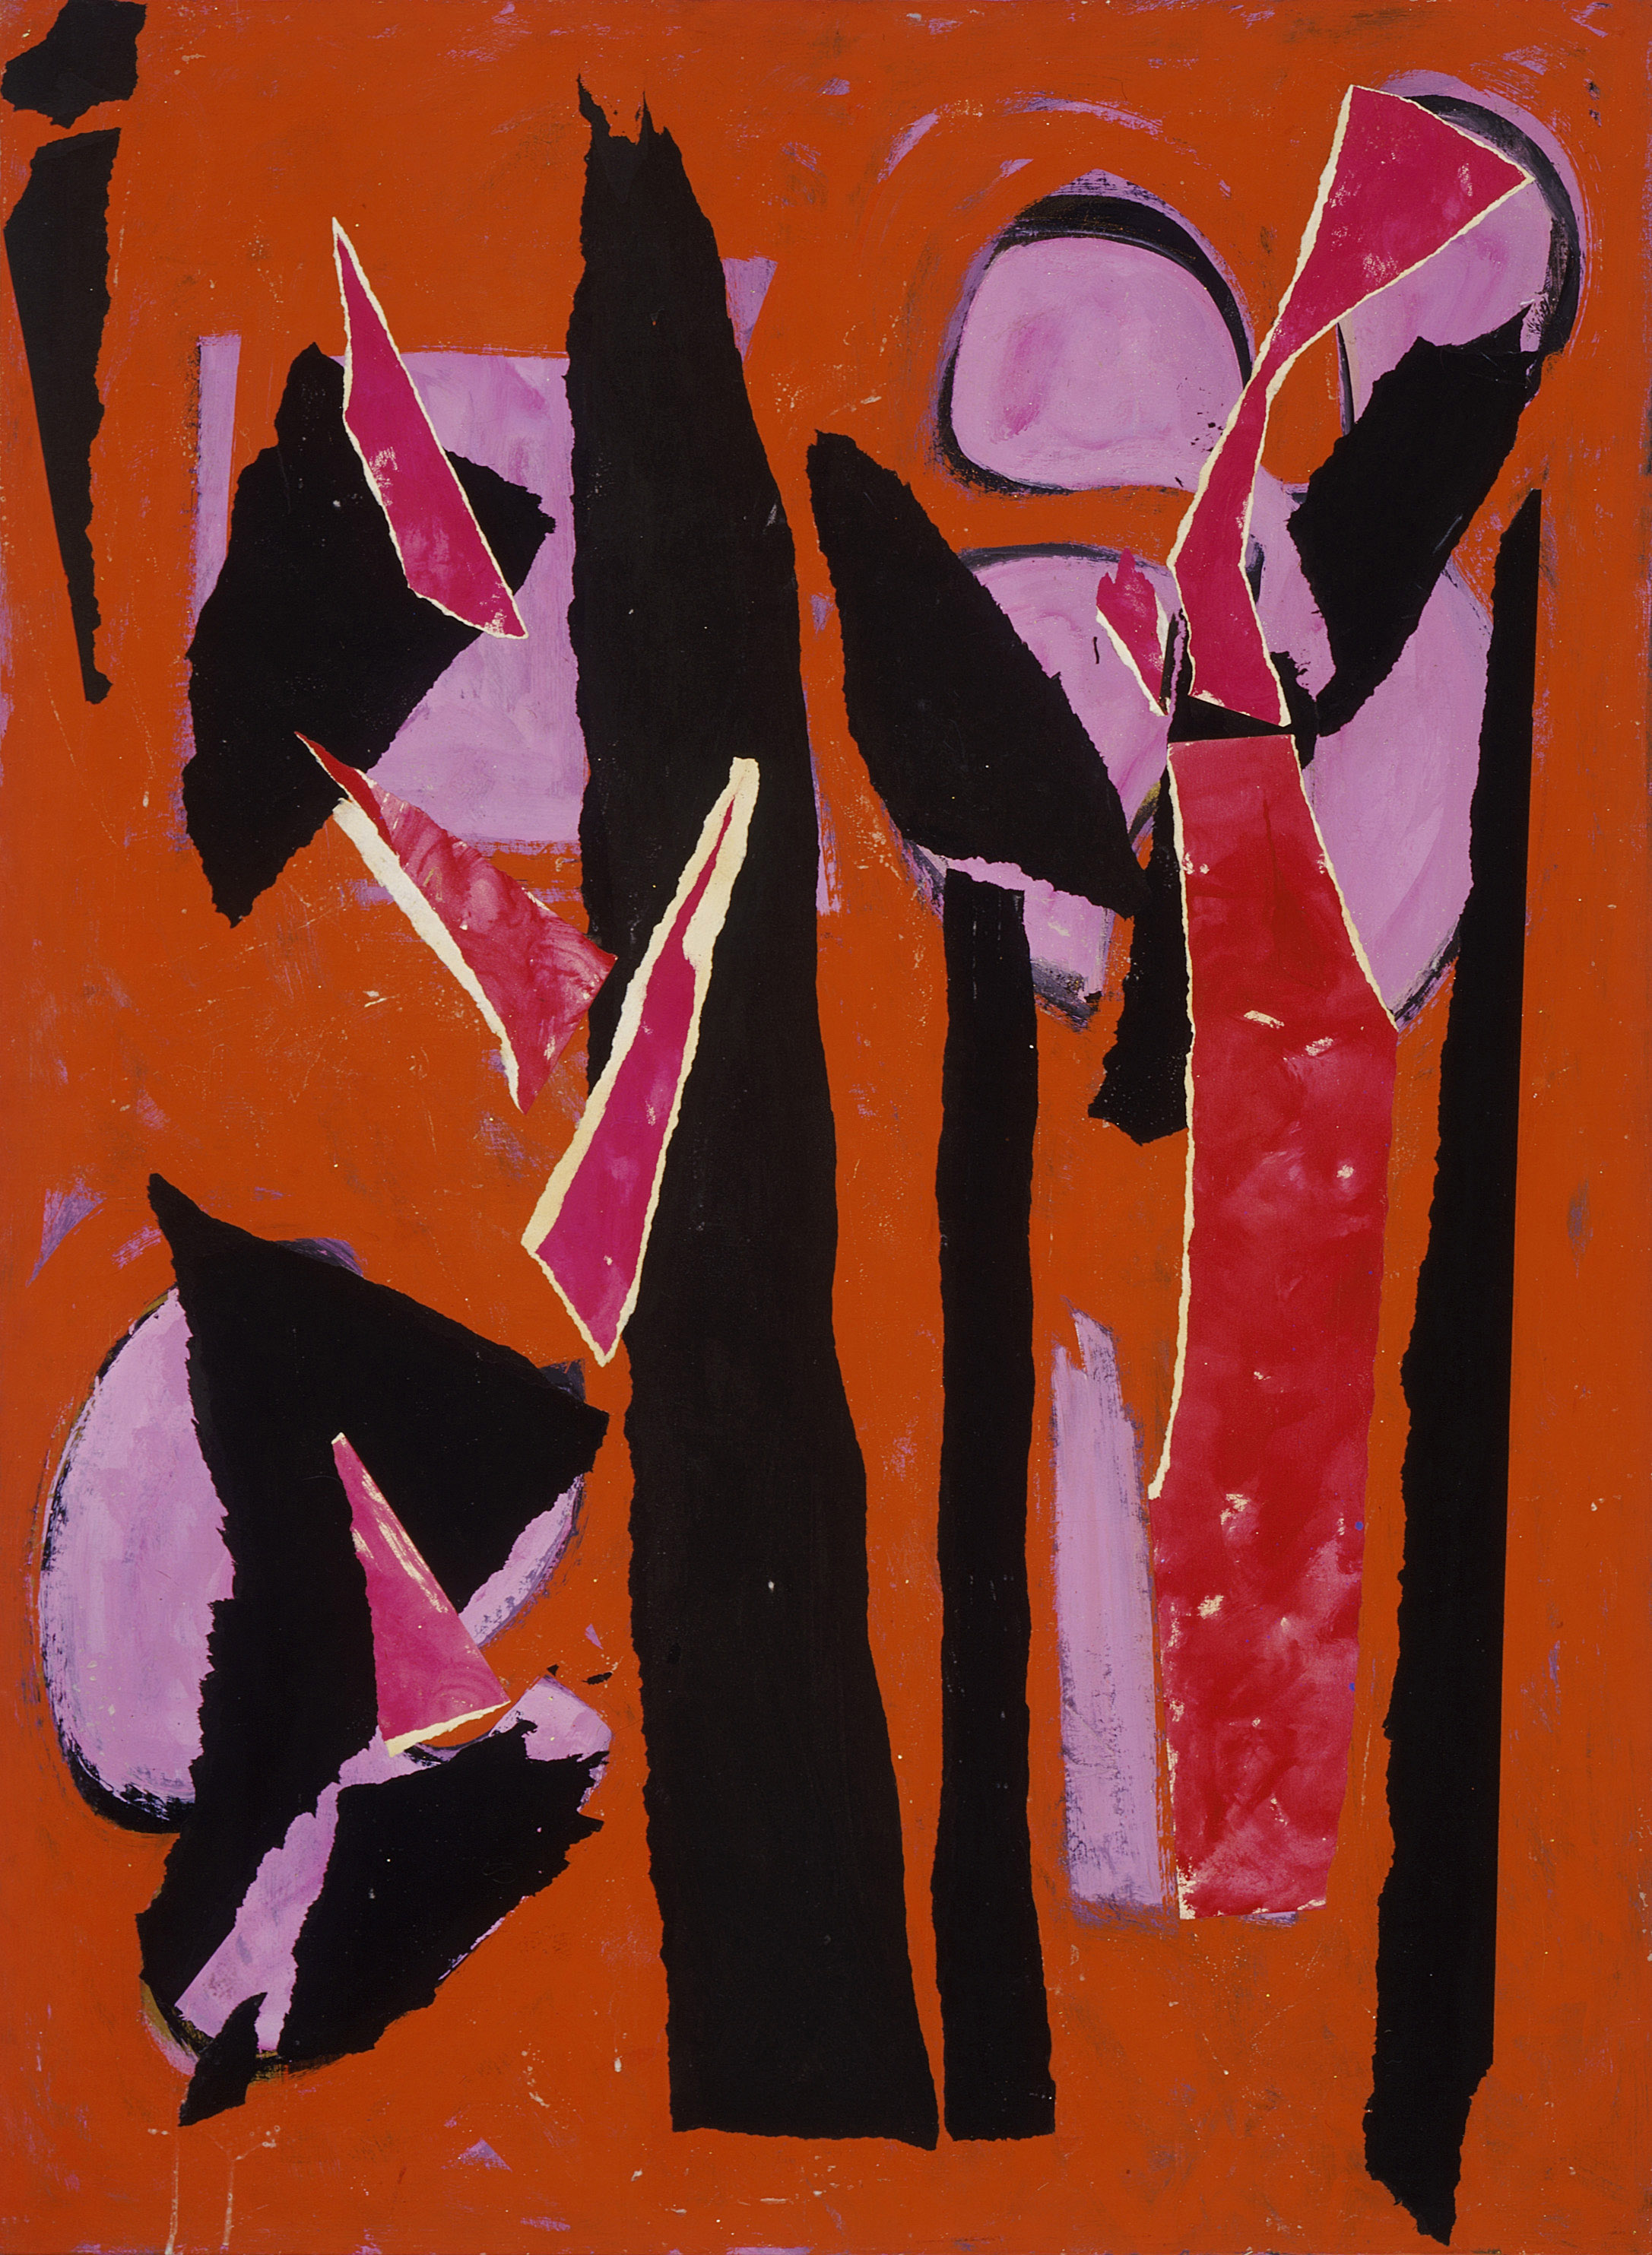 Lee Krasner, Desert Moon, 1955, Los Angeles County Museum of Art. © The Pollock-Krasner Foundation. © 2018. Digital Image Museum Associates/LACMA/Art Resource NY/ Scala, Florence.